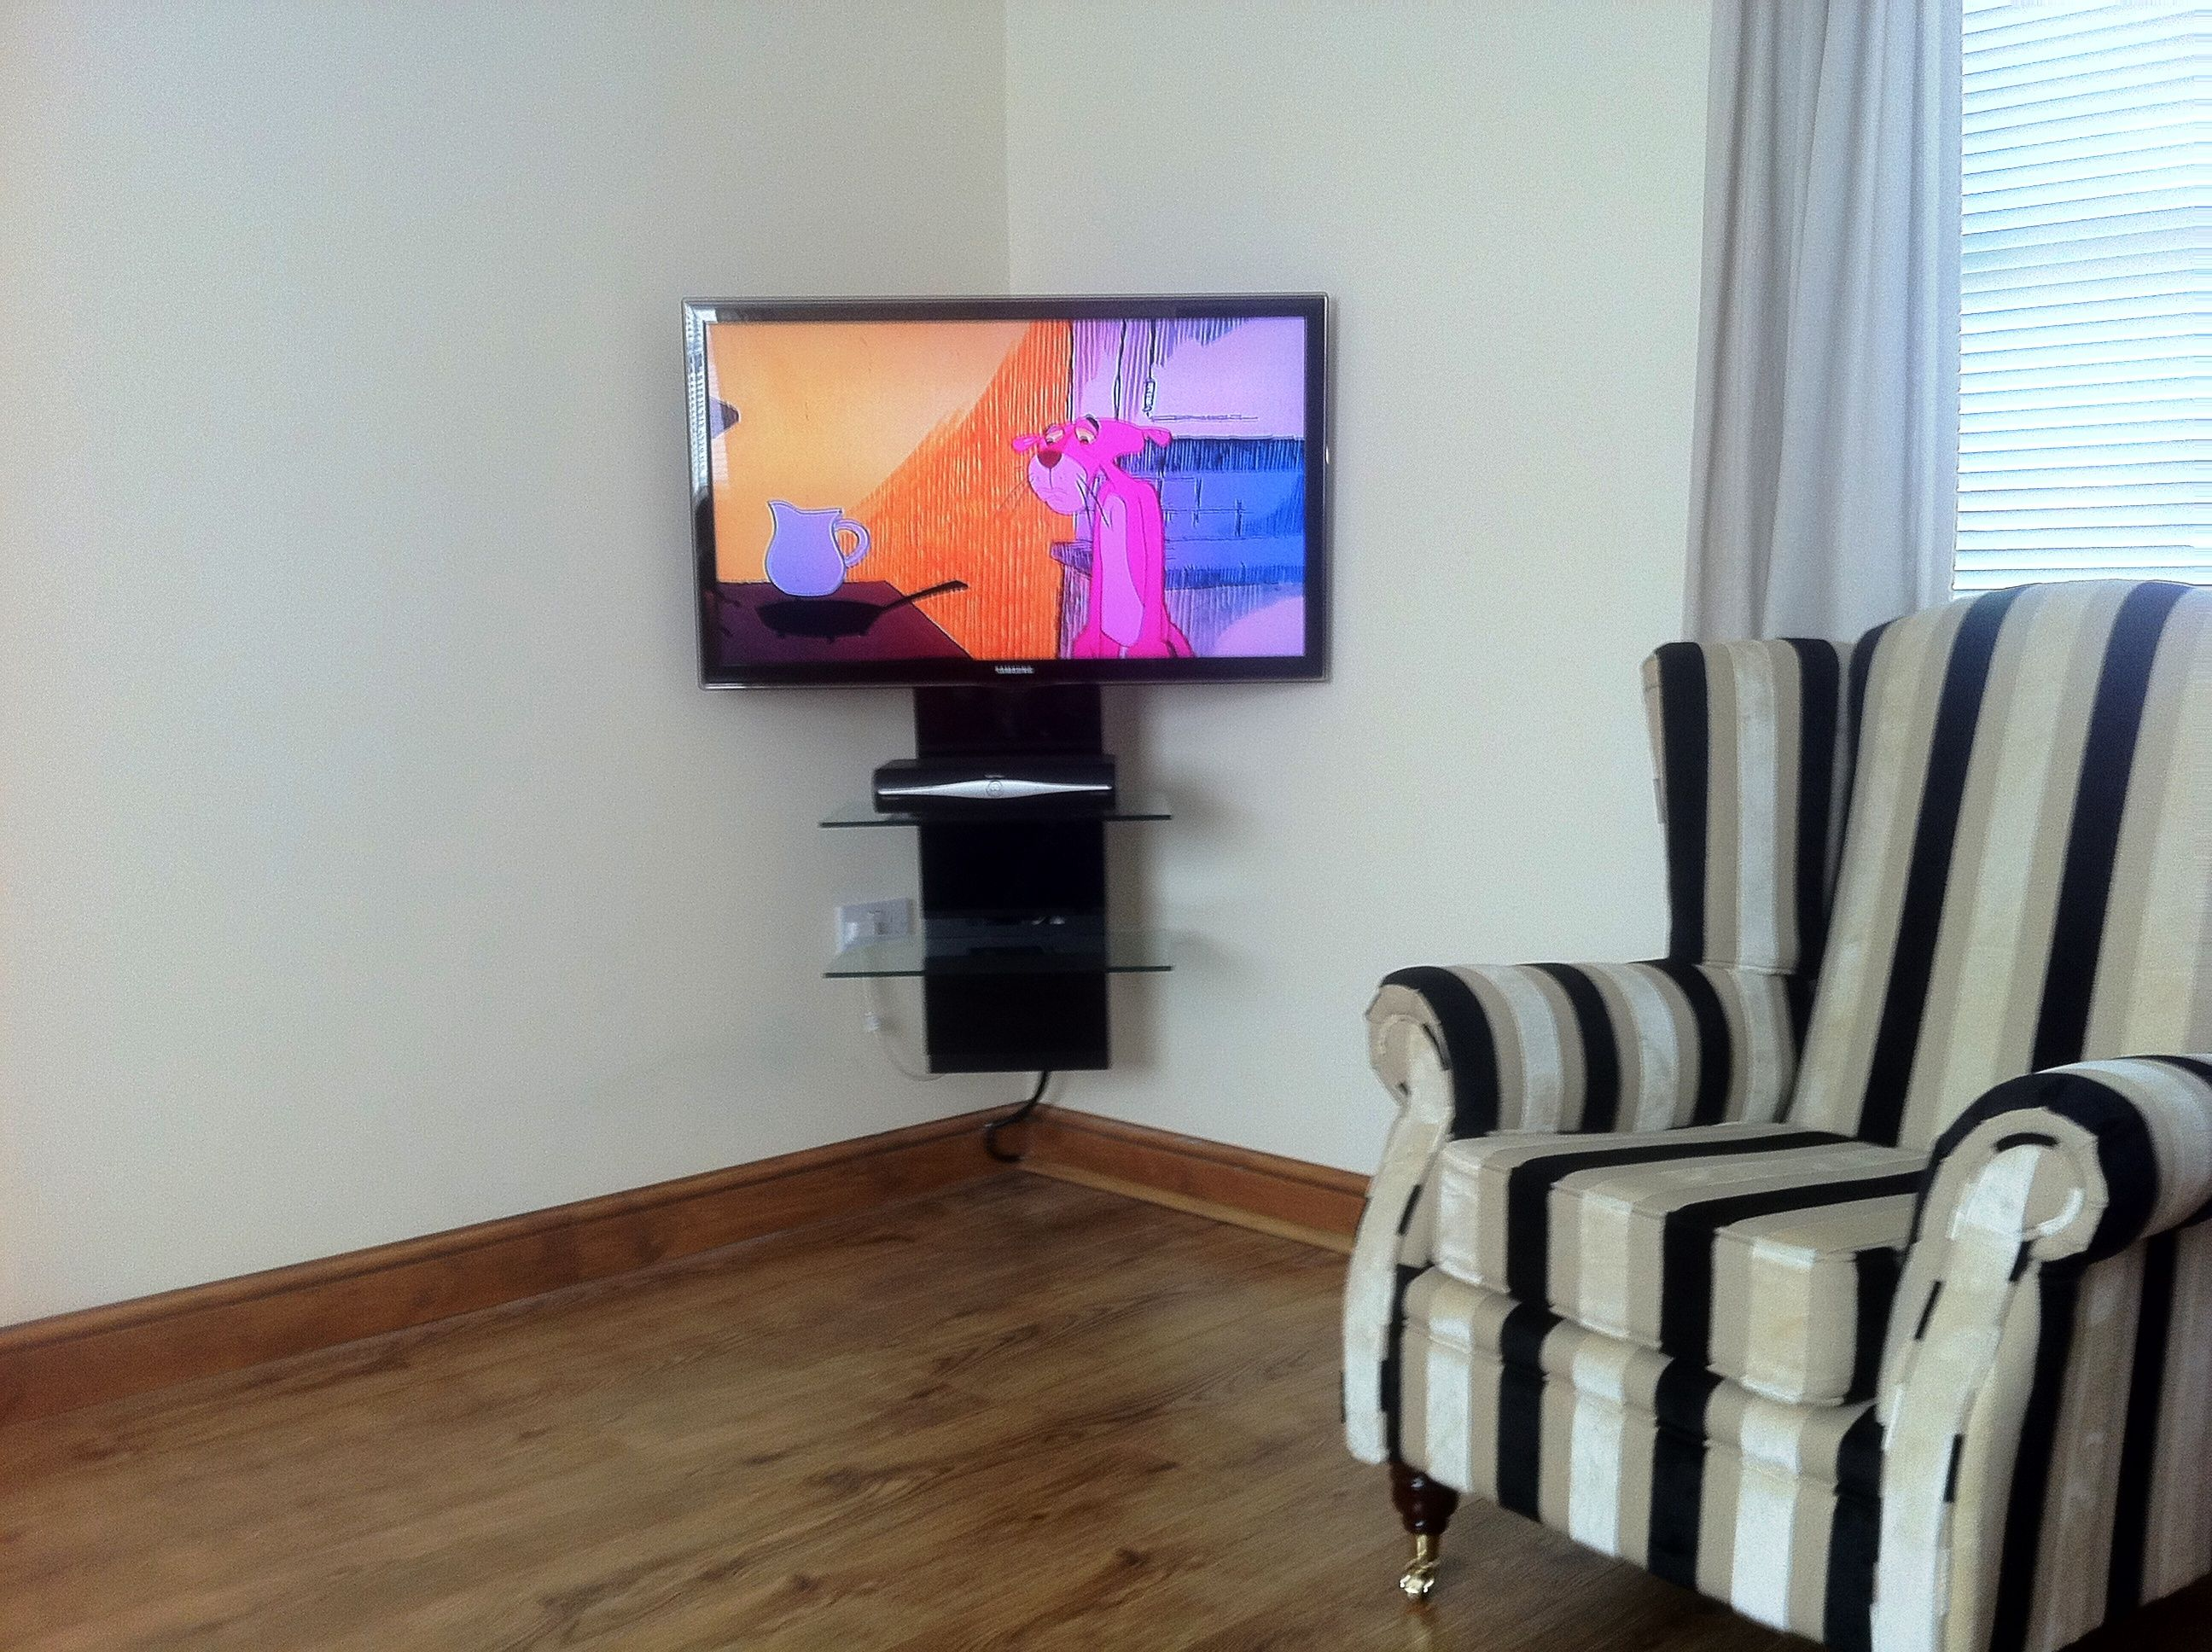 Plasma TV Wall Mounted In The Corner Of The Room On A - Corner floating wall shelf hidden bracket wall shelving corner wall